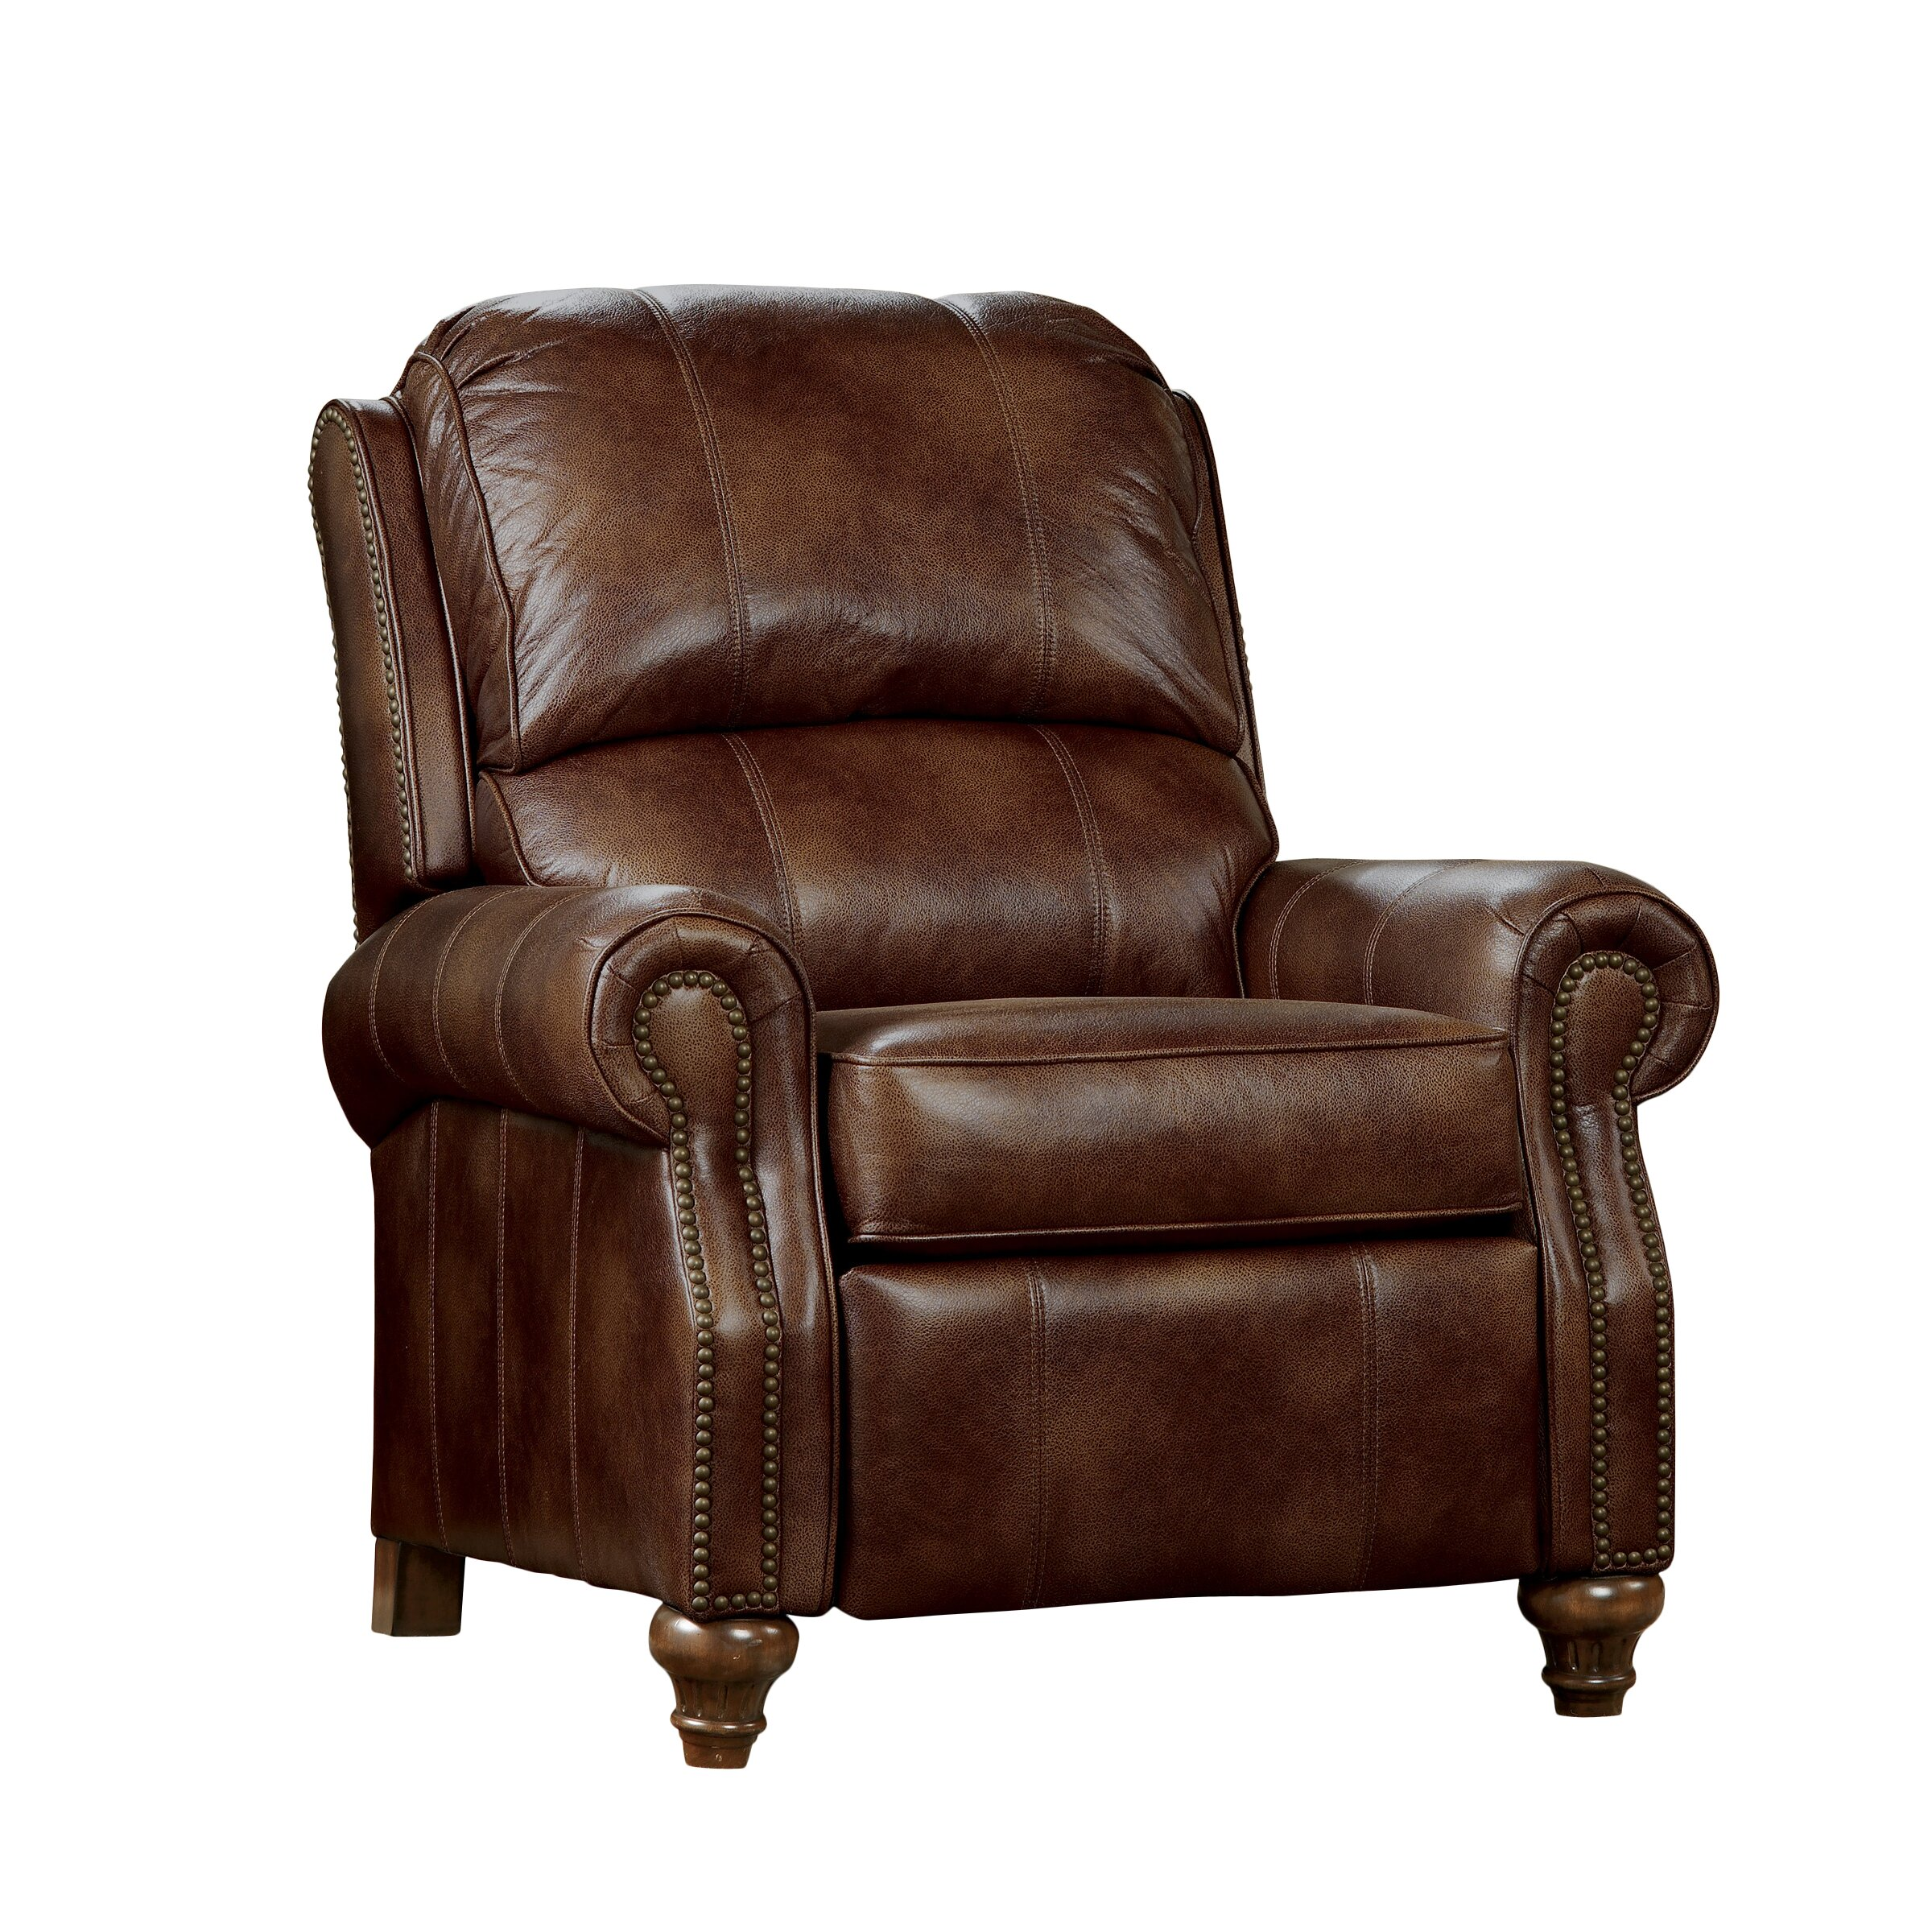 Ashley Furniture In Raleigh Nc: Signature Design By Ashley Gilford Low Leg Chaise Recliner